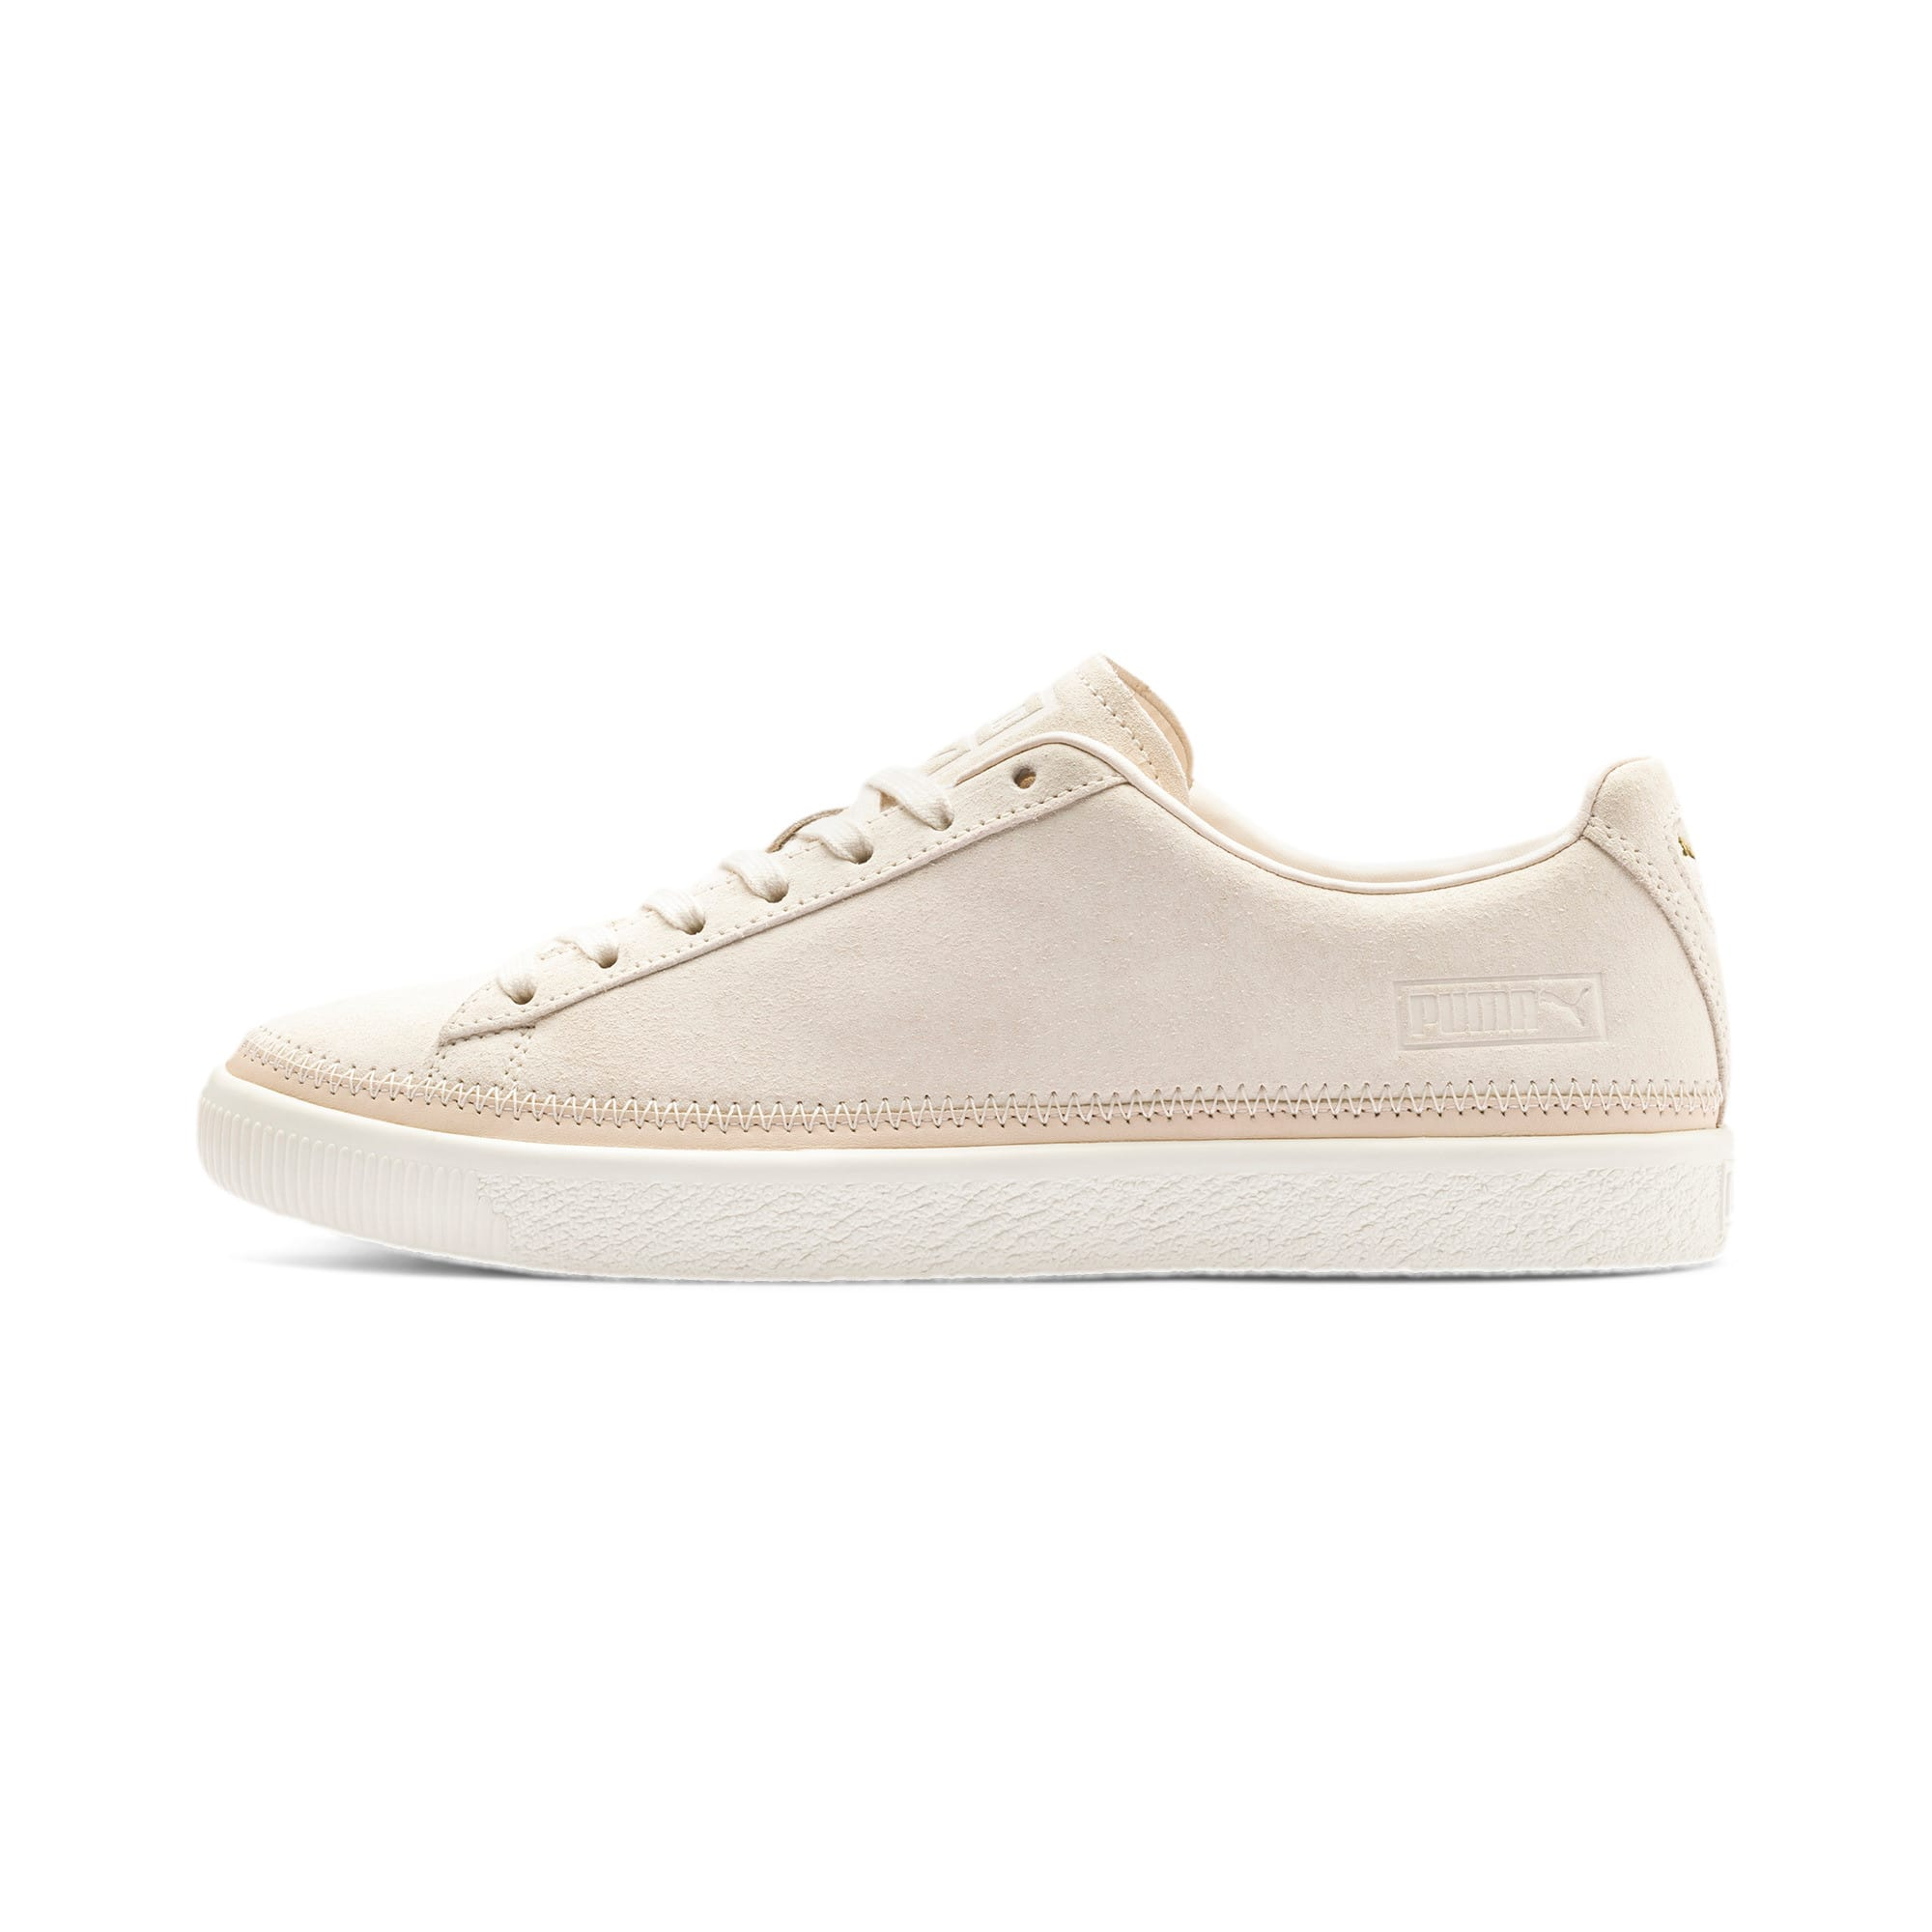 Thumbnail 1 of Suede Trim PRM Sneakers, White Smoke-Whisper White, medium